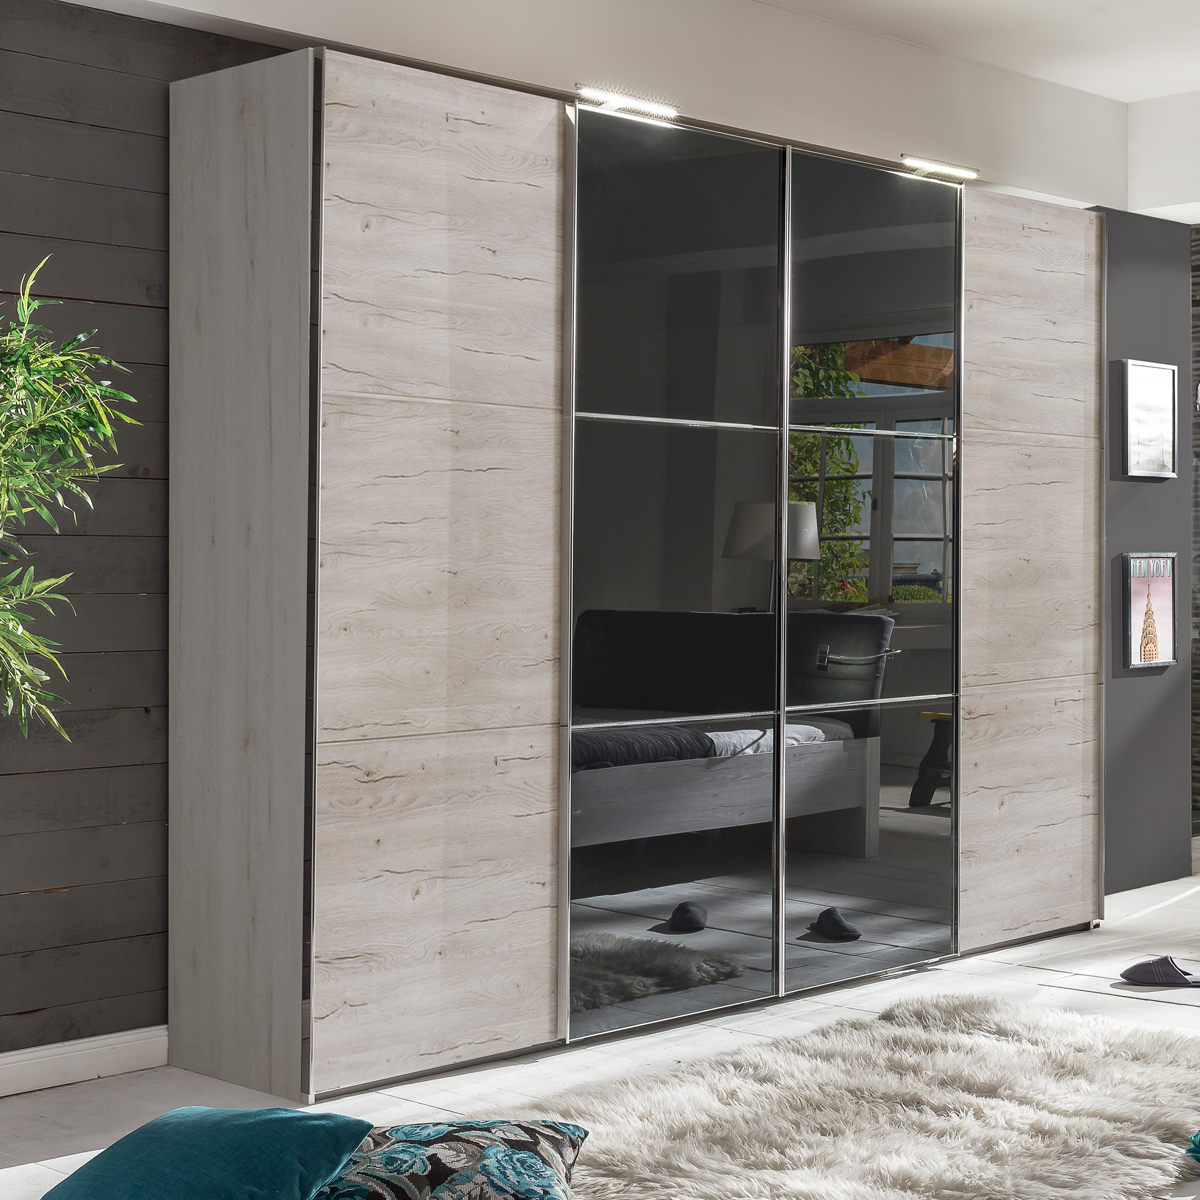 schwebet renschrank escape kleiderschrank mit glasfront. Black Bedroom Furniture Sets. Home Design Ideas